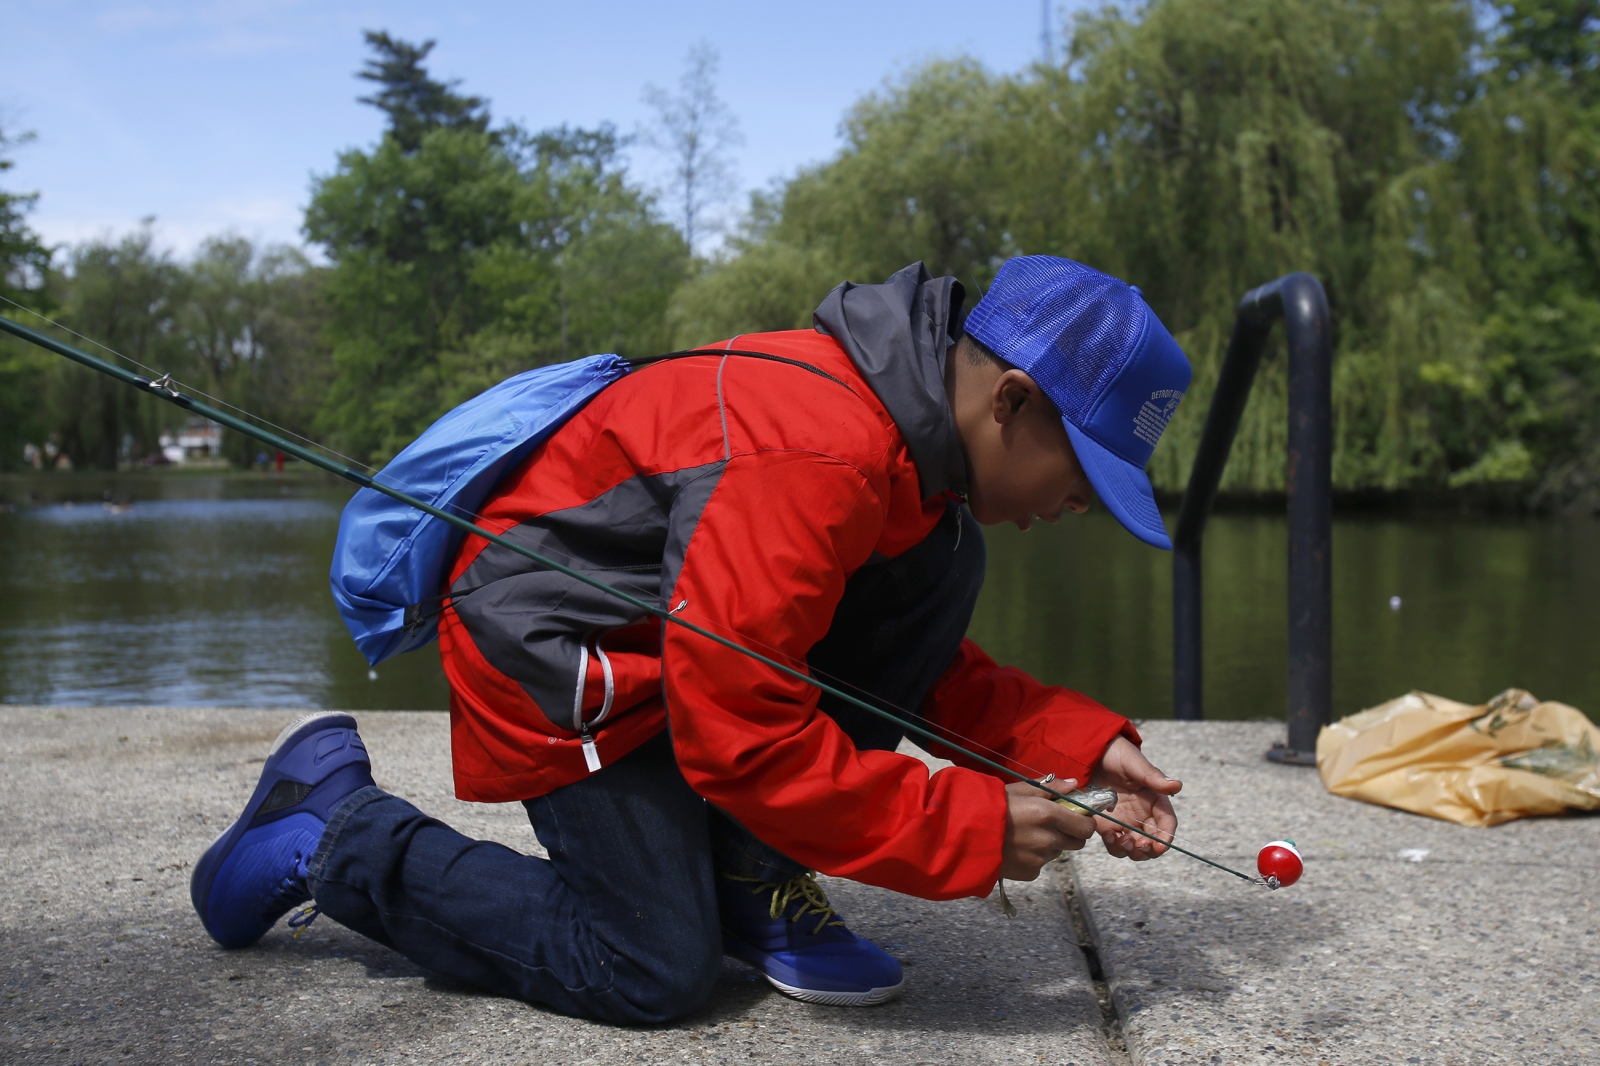 A young boy works hard to unhook a squirming fish he caught during the 21st annual Detroit Area Kids Fishing Derby in Palmer Park in Detroit, Mich.